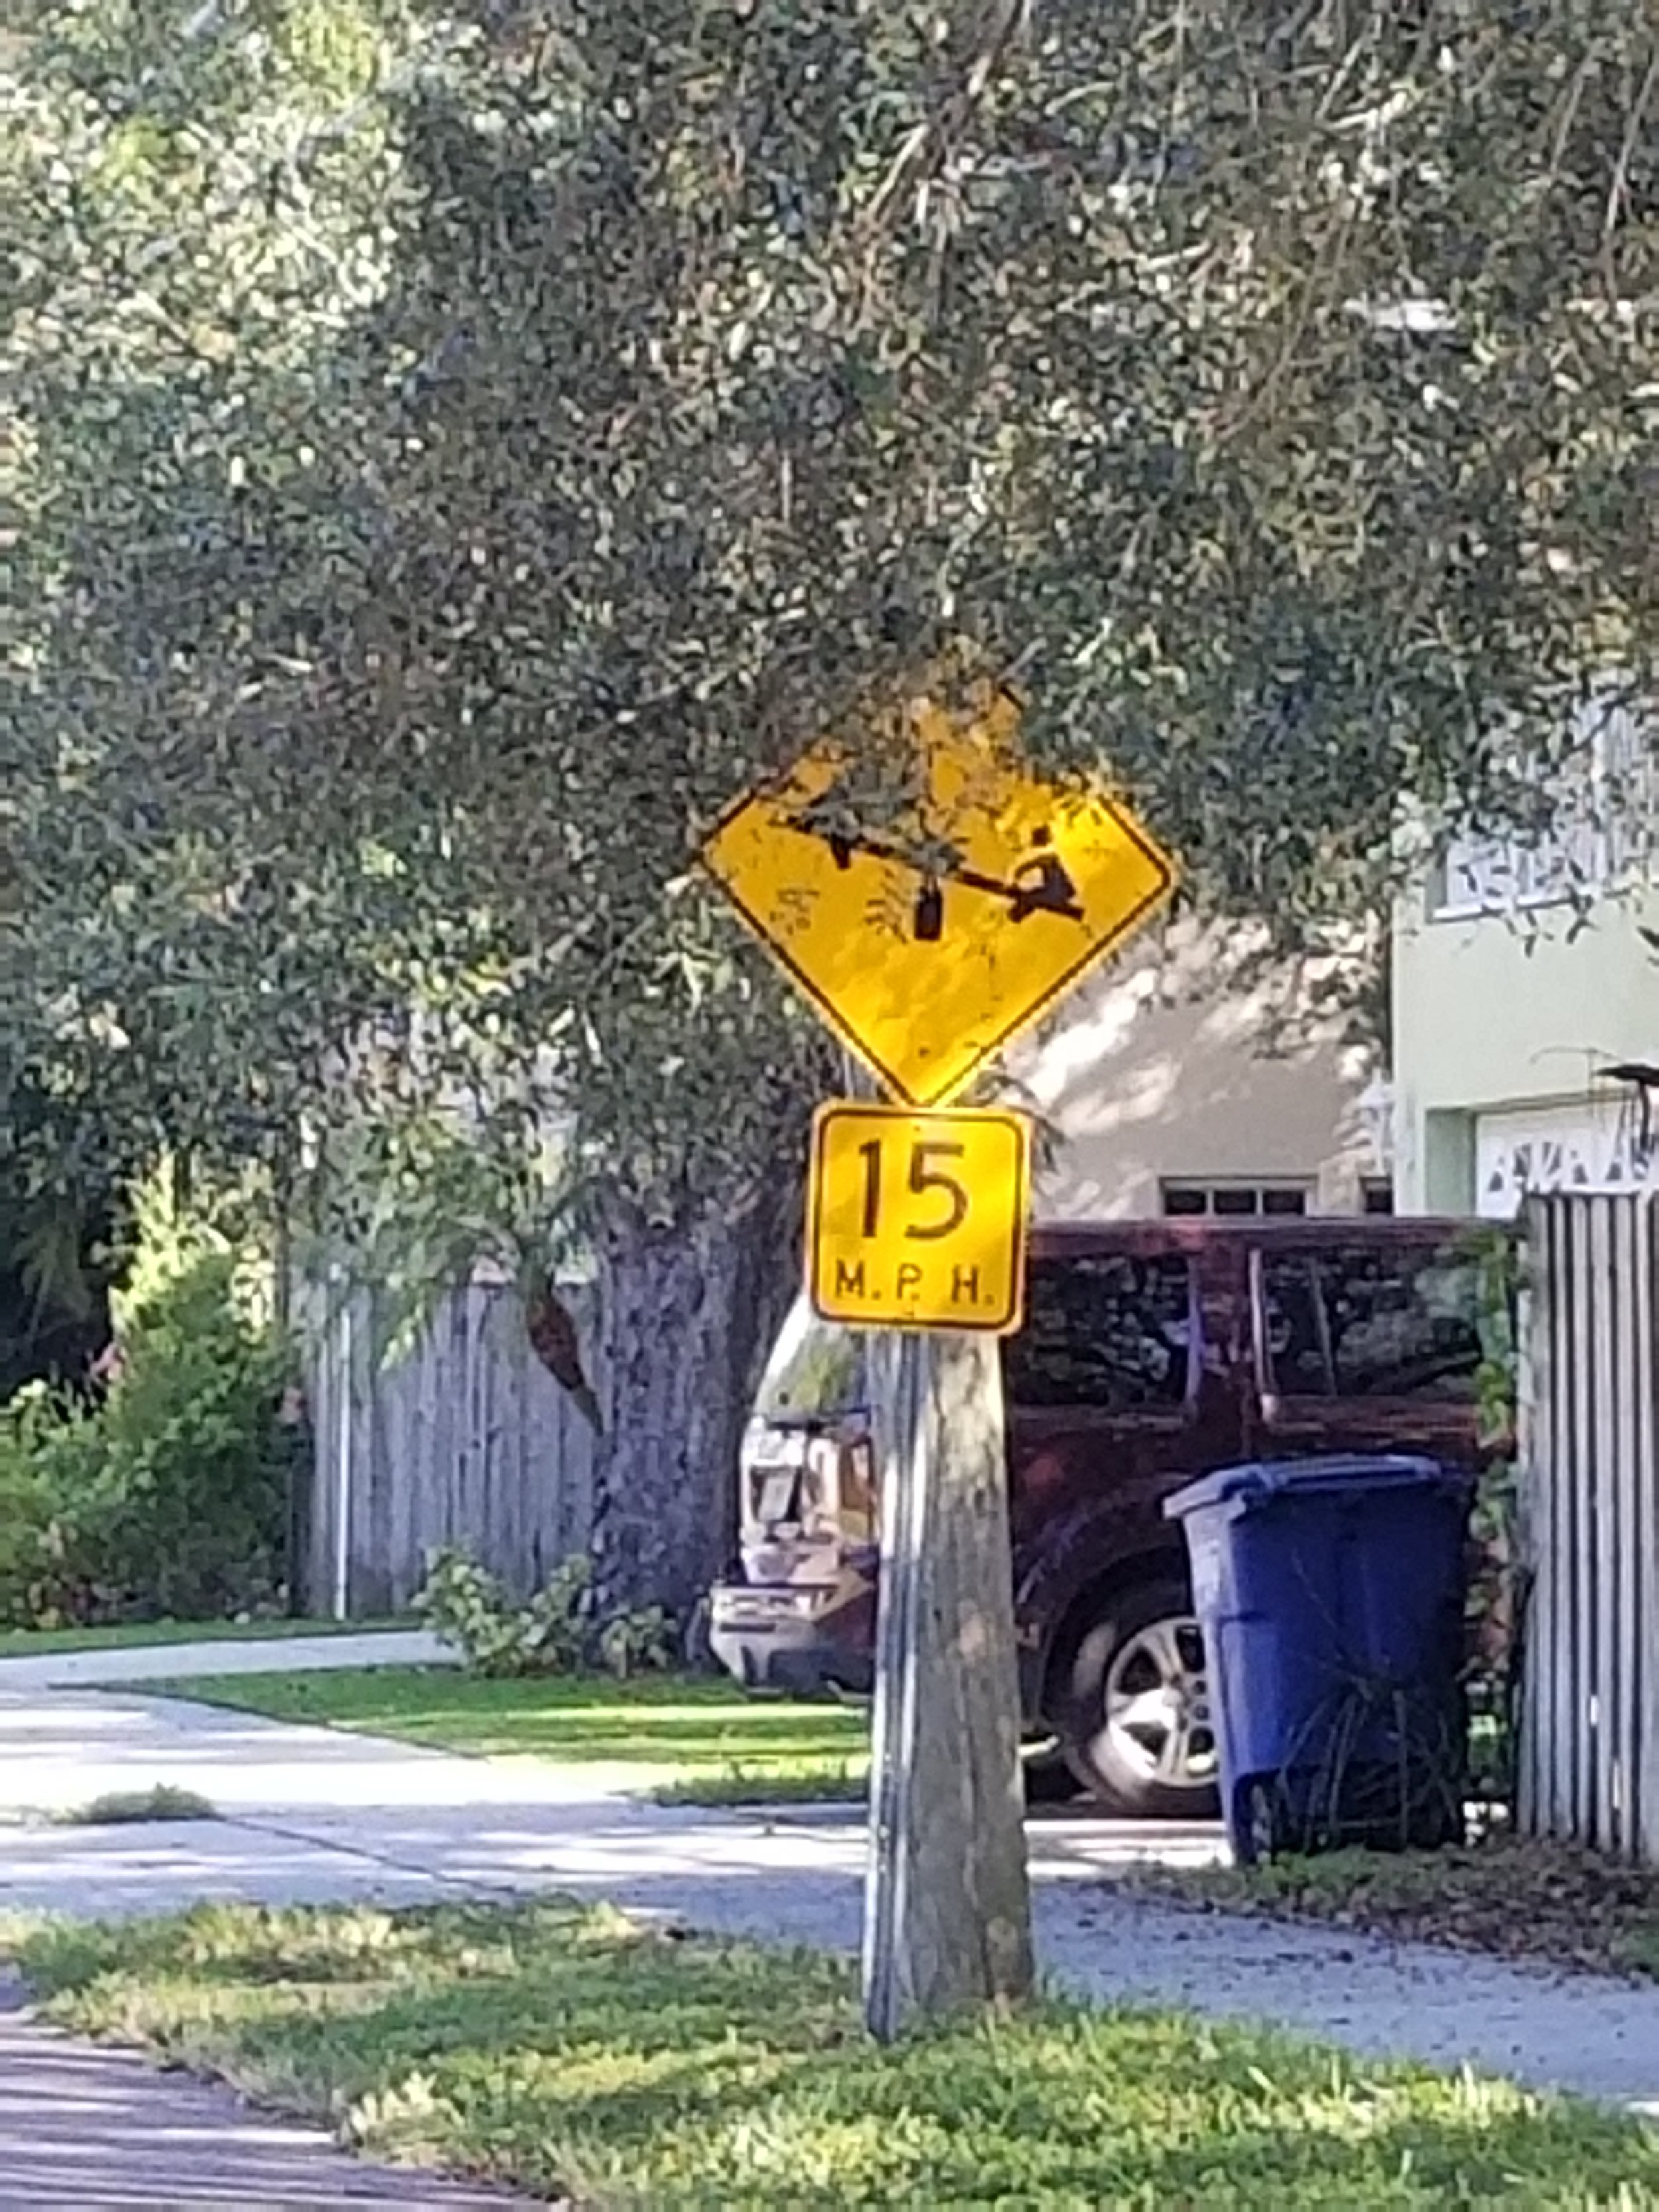 The City of Tampa says this sign, the only speed deterrent on Sterling Avenue, is not enforceable.